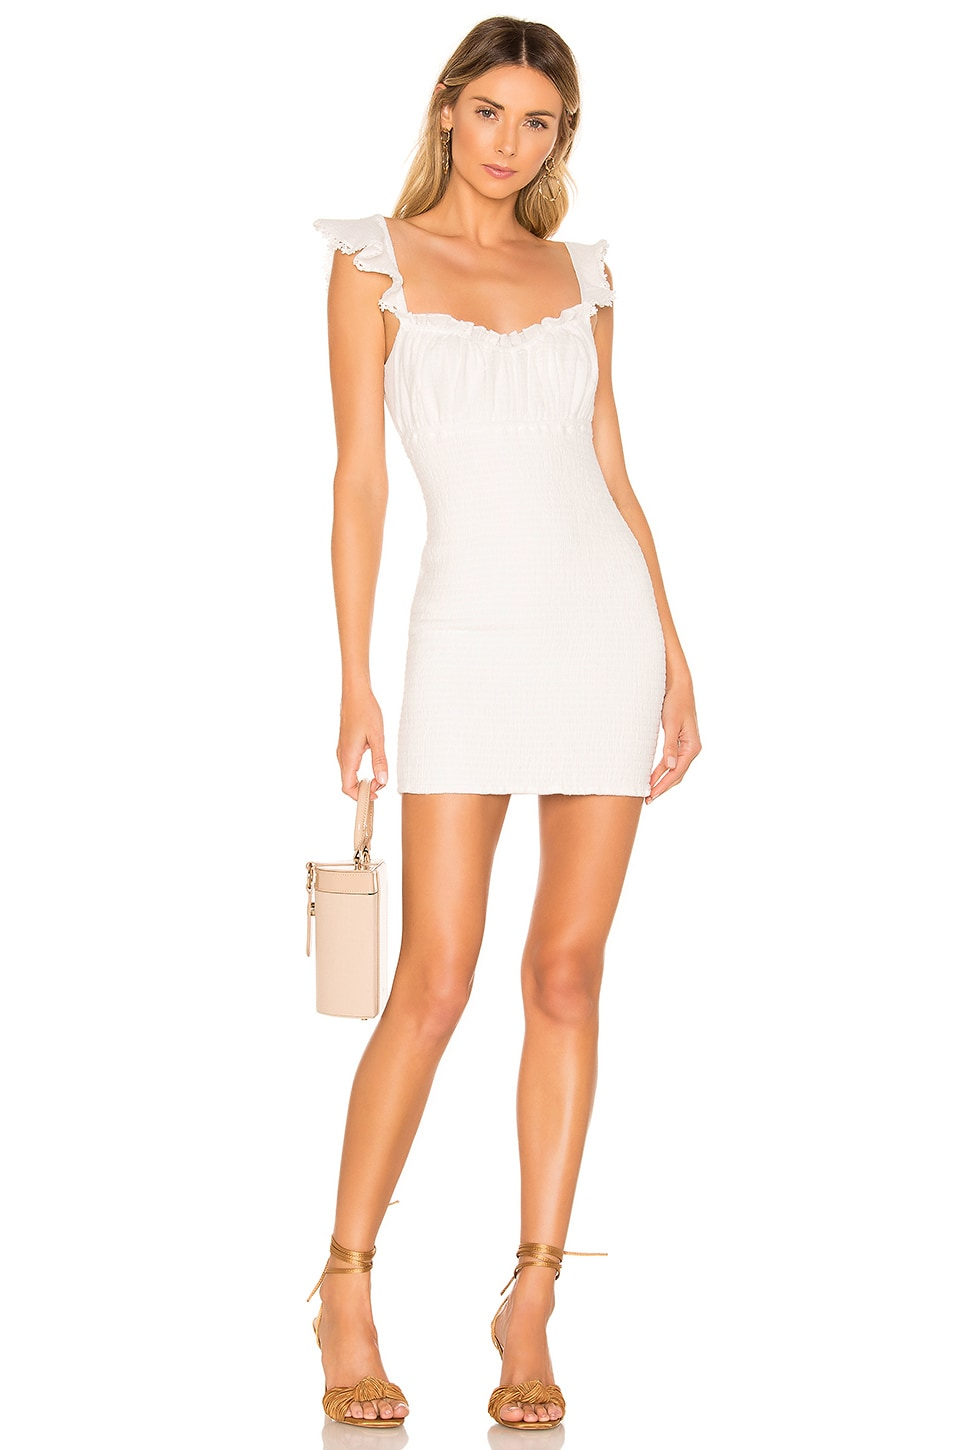 MAJORELLE Fanning Mini Dress in Ivory